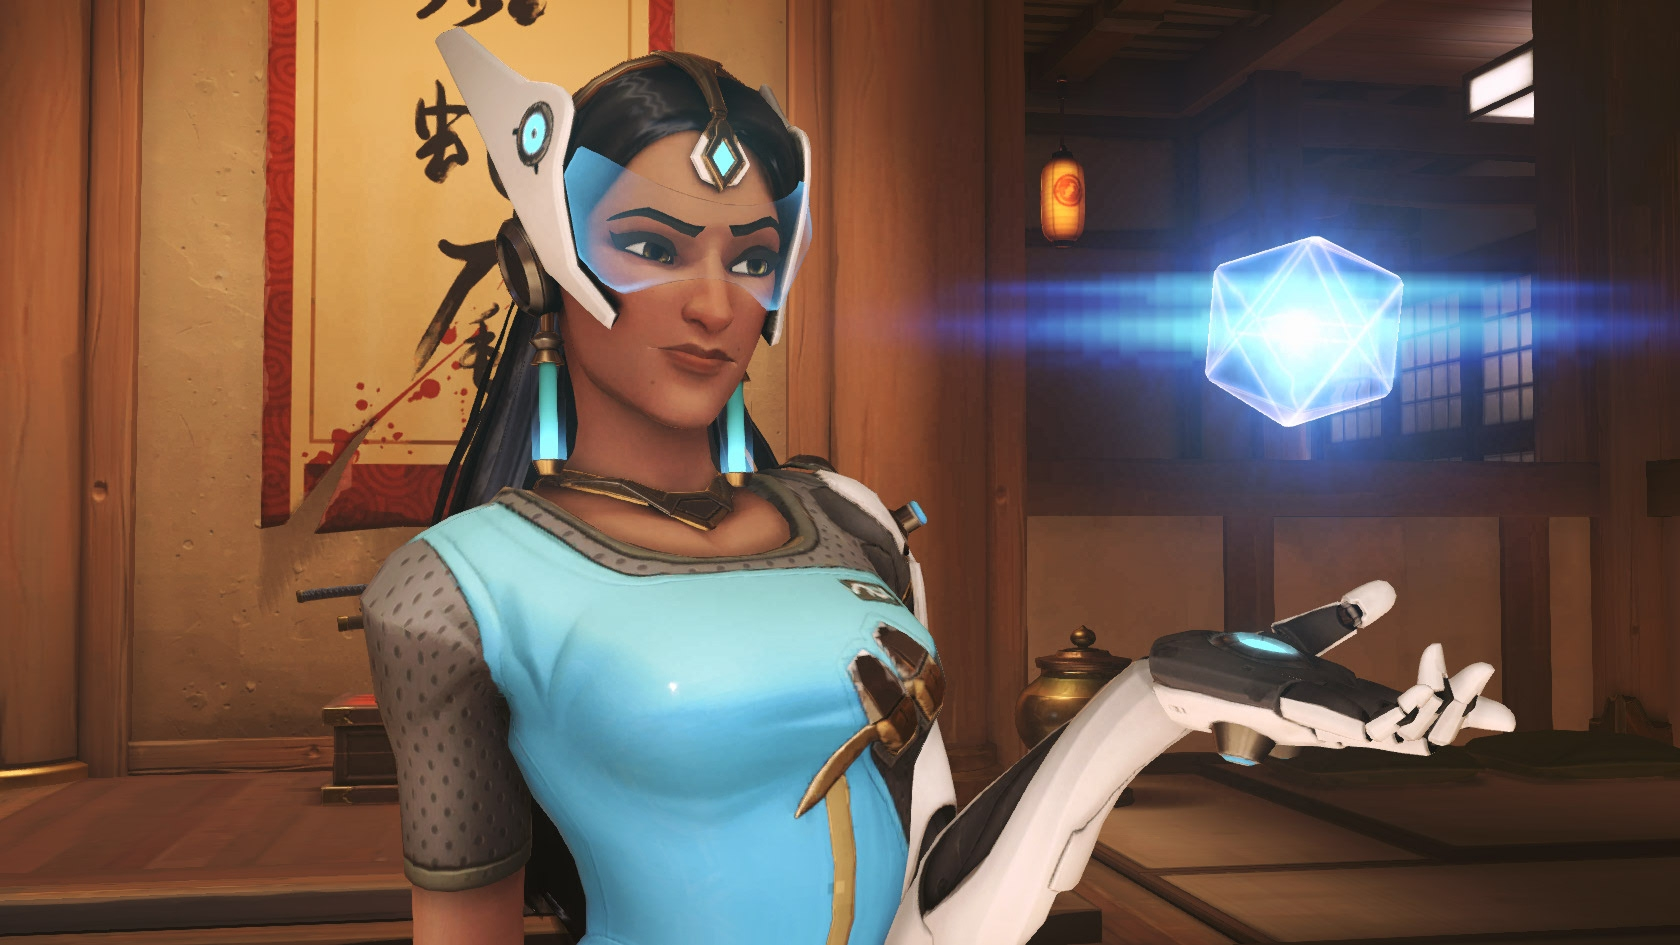 overwatch_symmetra_changes[1].jpg